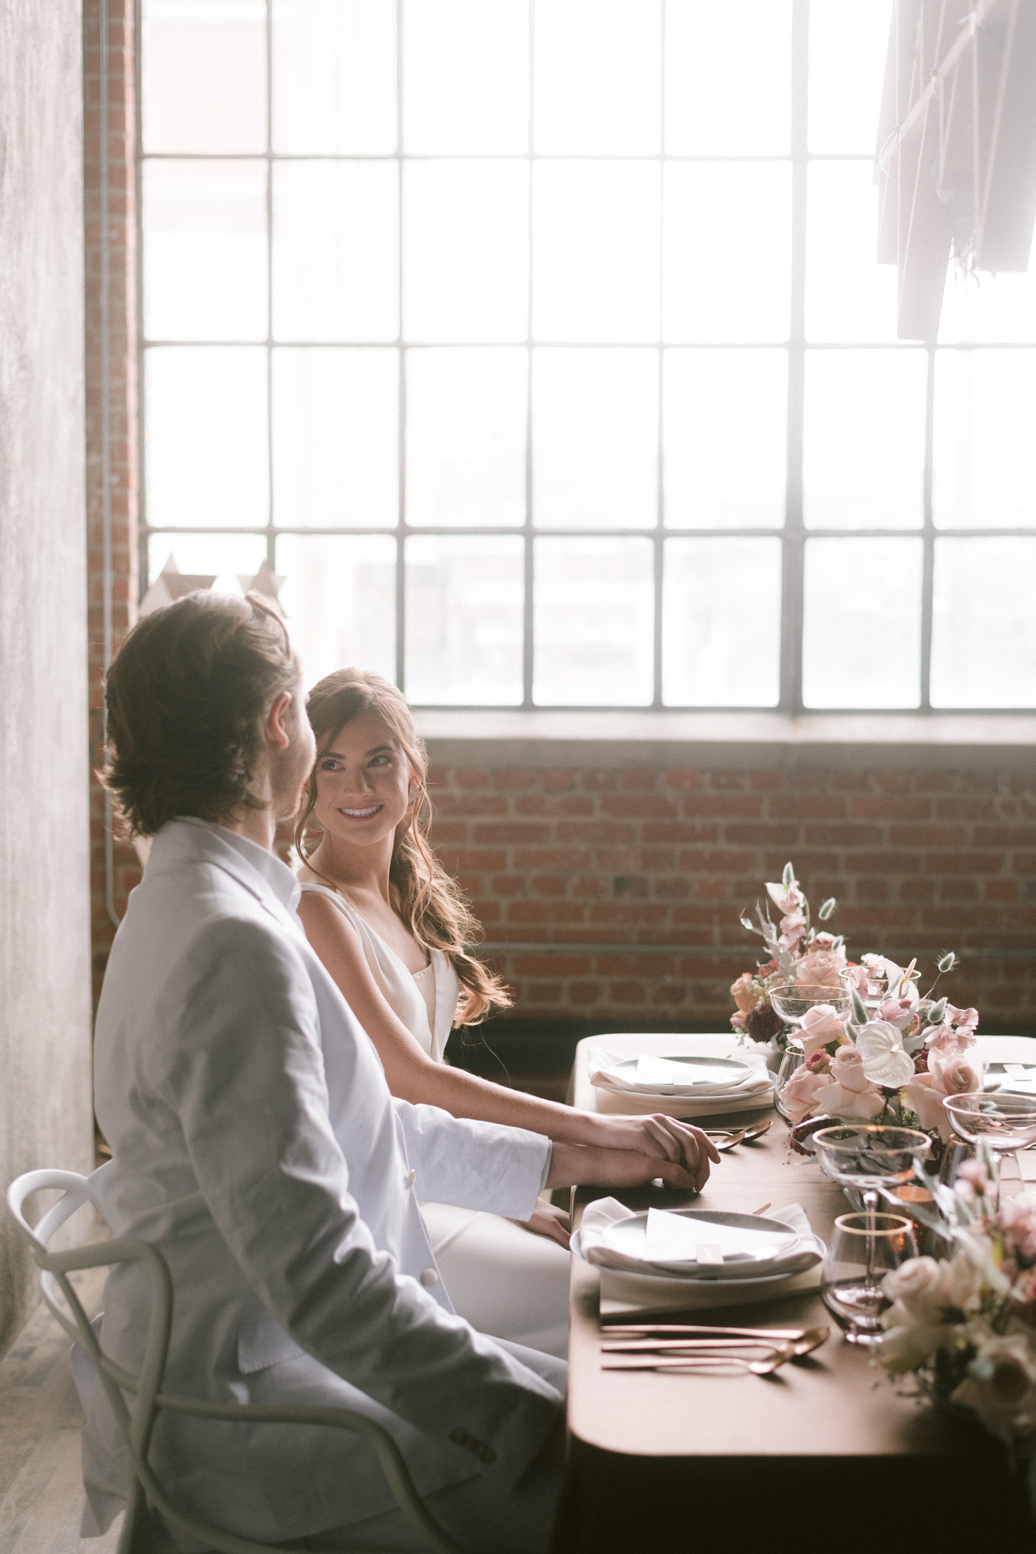 Bride smiling at the groom at the wedding table in a loft space